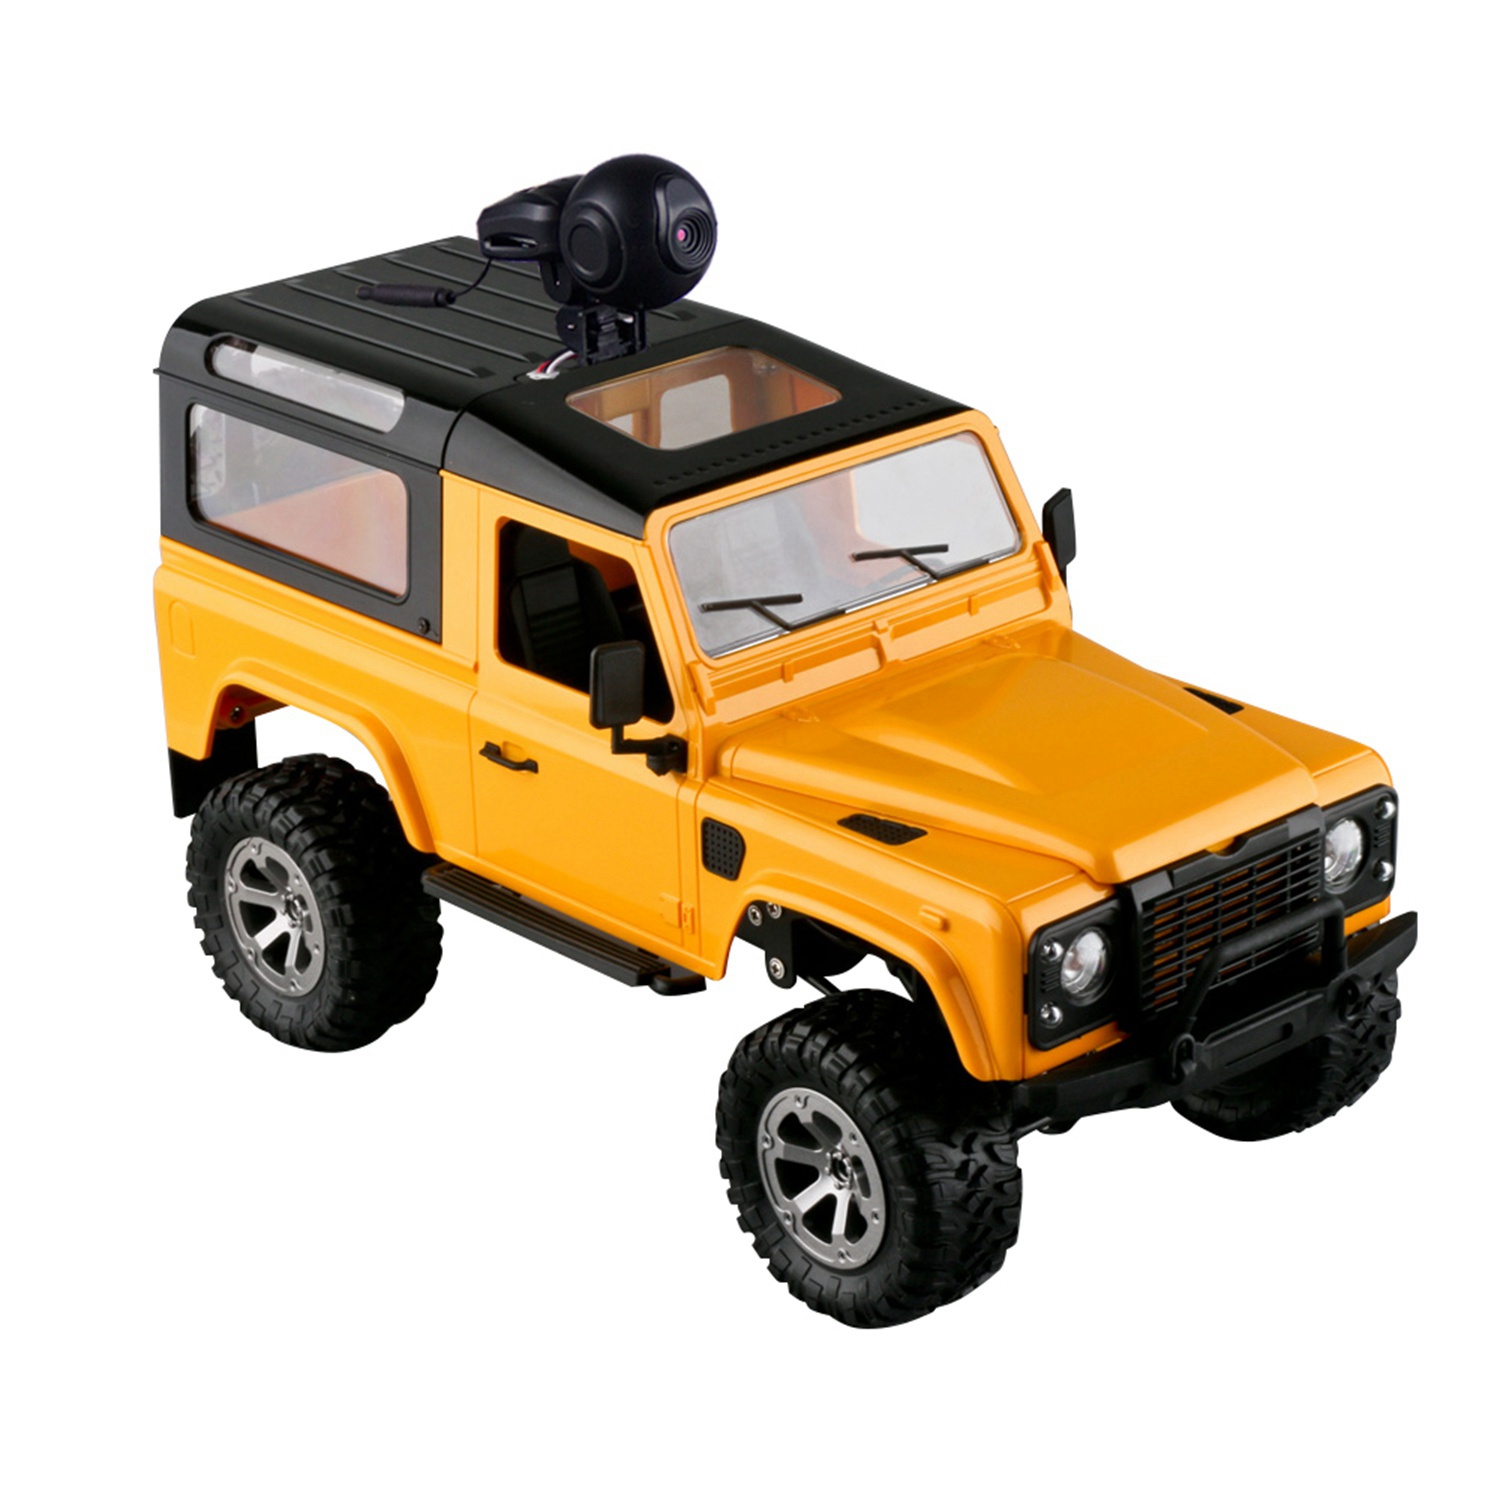 1:16 Rc 2.4Ghz 4Wd Tracked Wheel Metal Frame Rc Car Rtr Toy1:16 Rc 2.4Ghz 4Wd Tracked Wheel Metal Frame Rc Car Rtr Toy